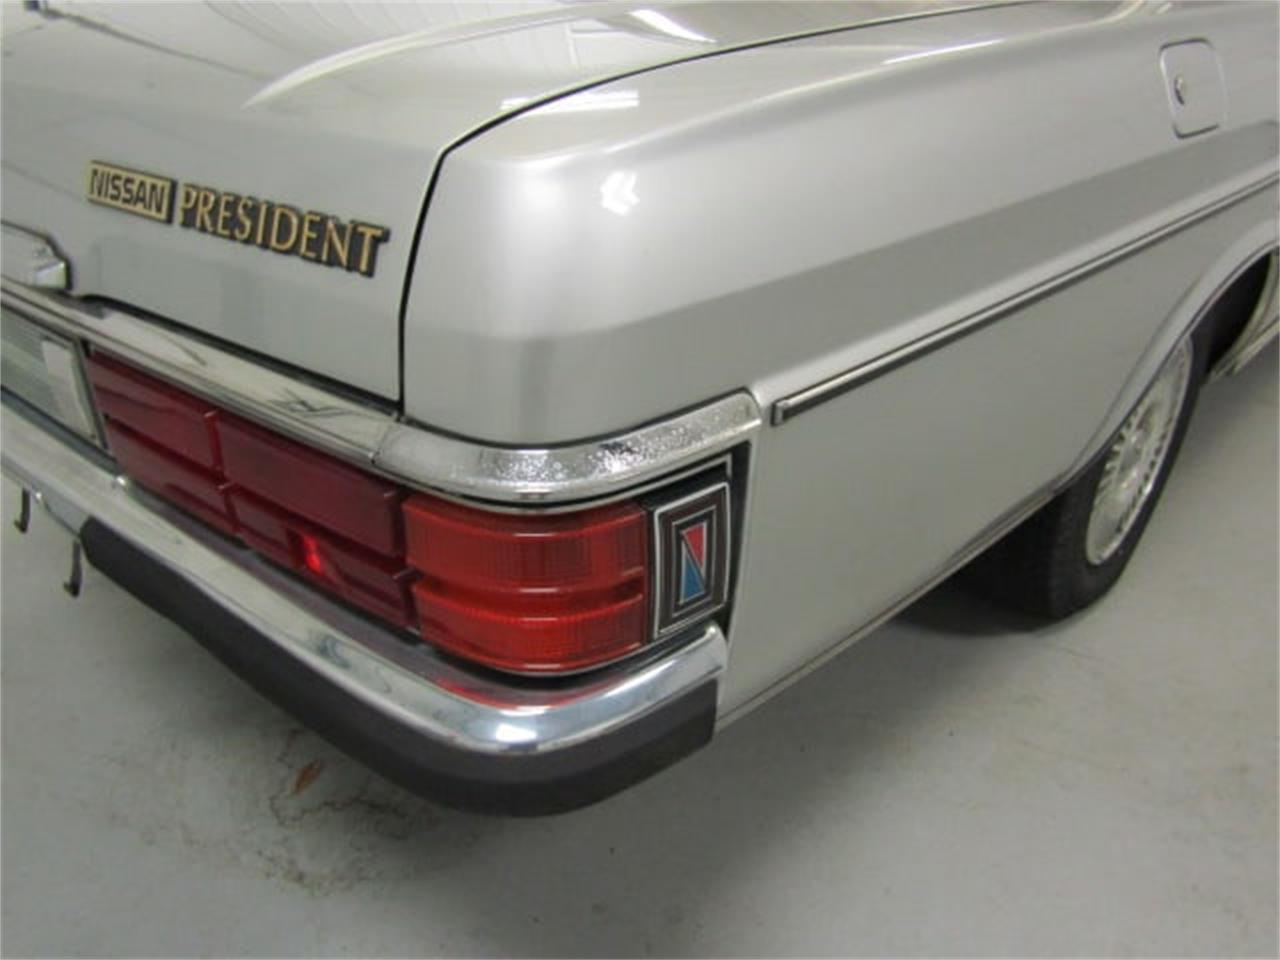 Large Picture of '90 Nissan President located in Virginia - $9,900.00 - JLD9